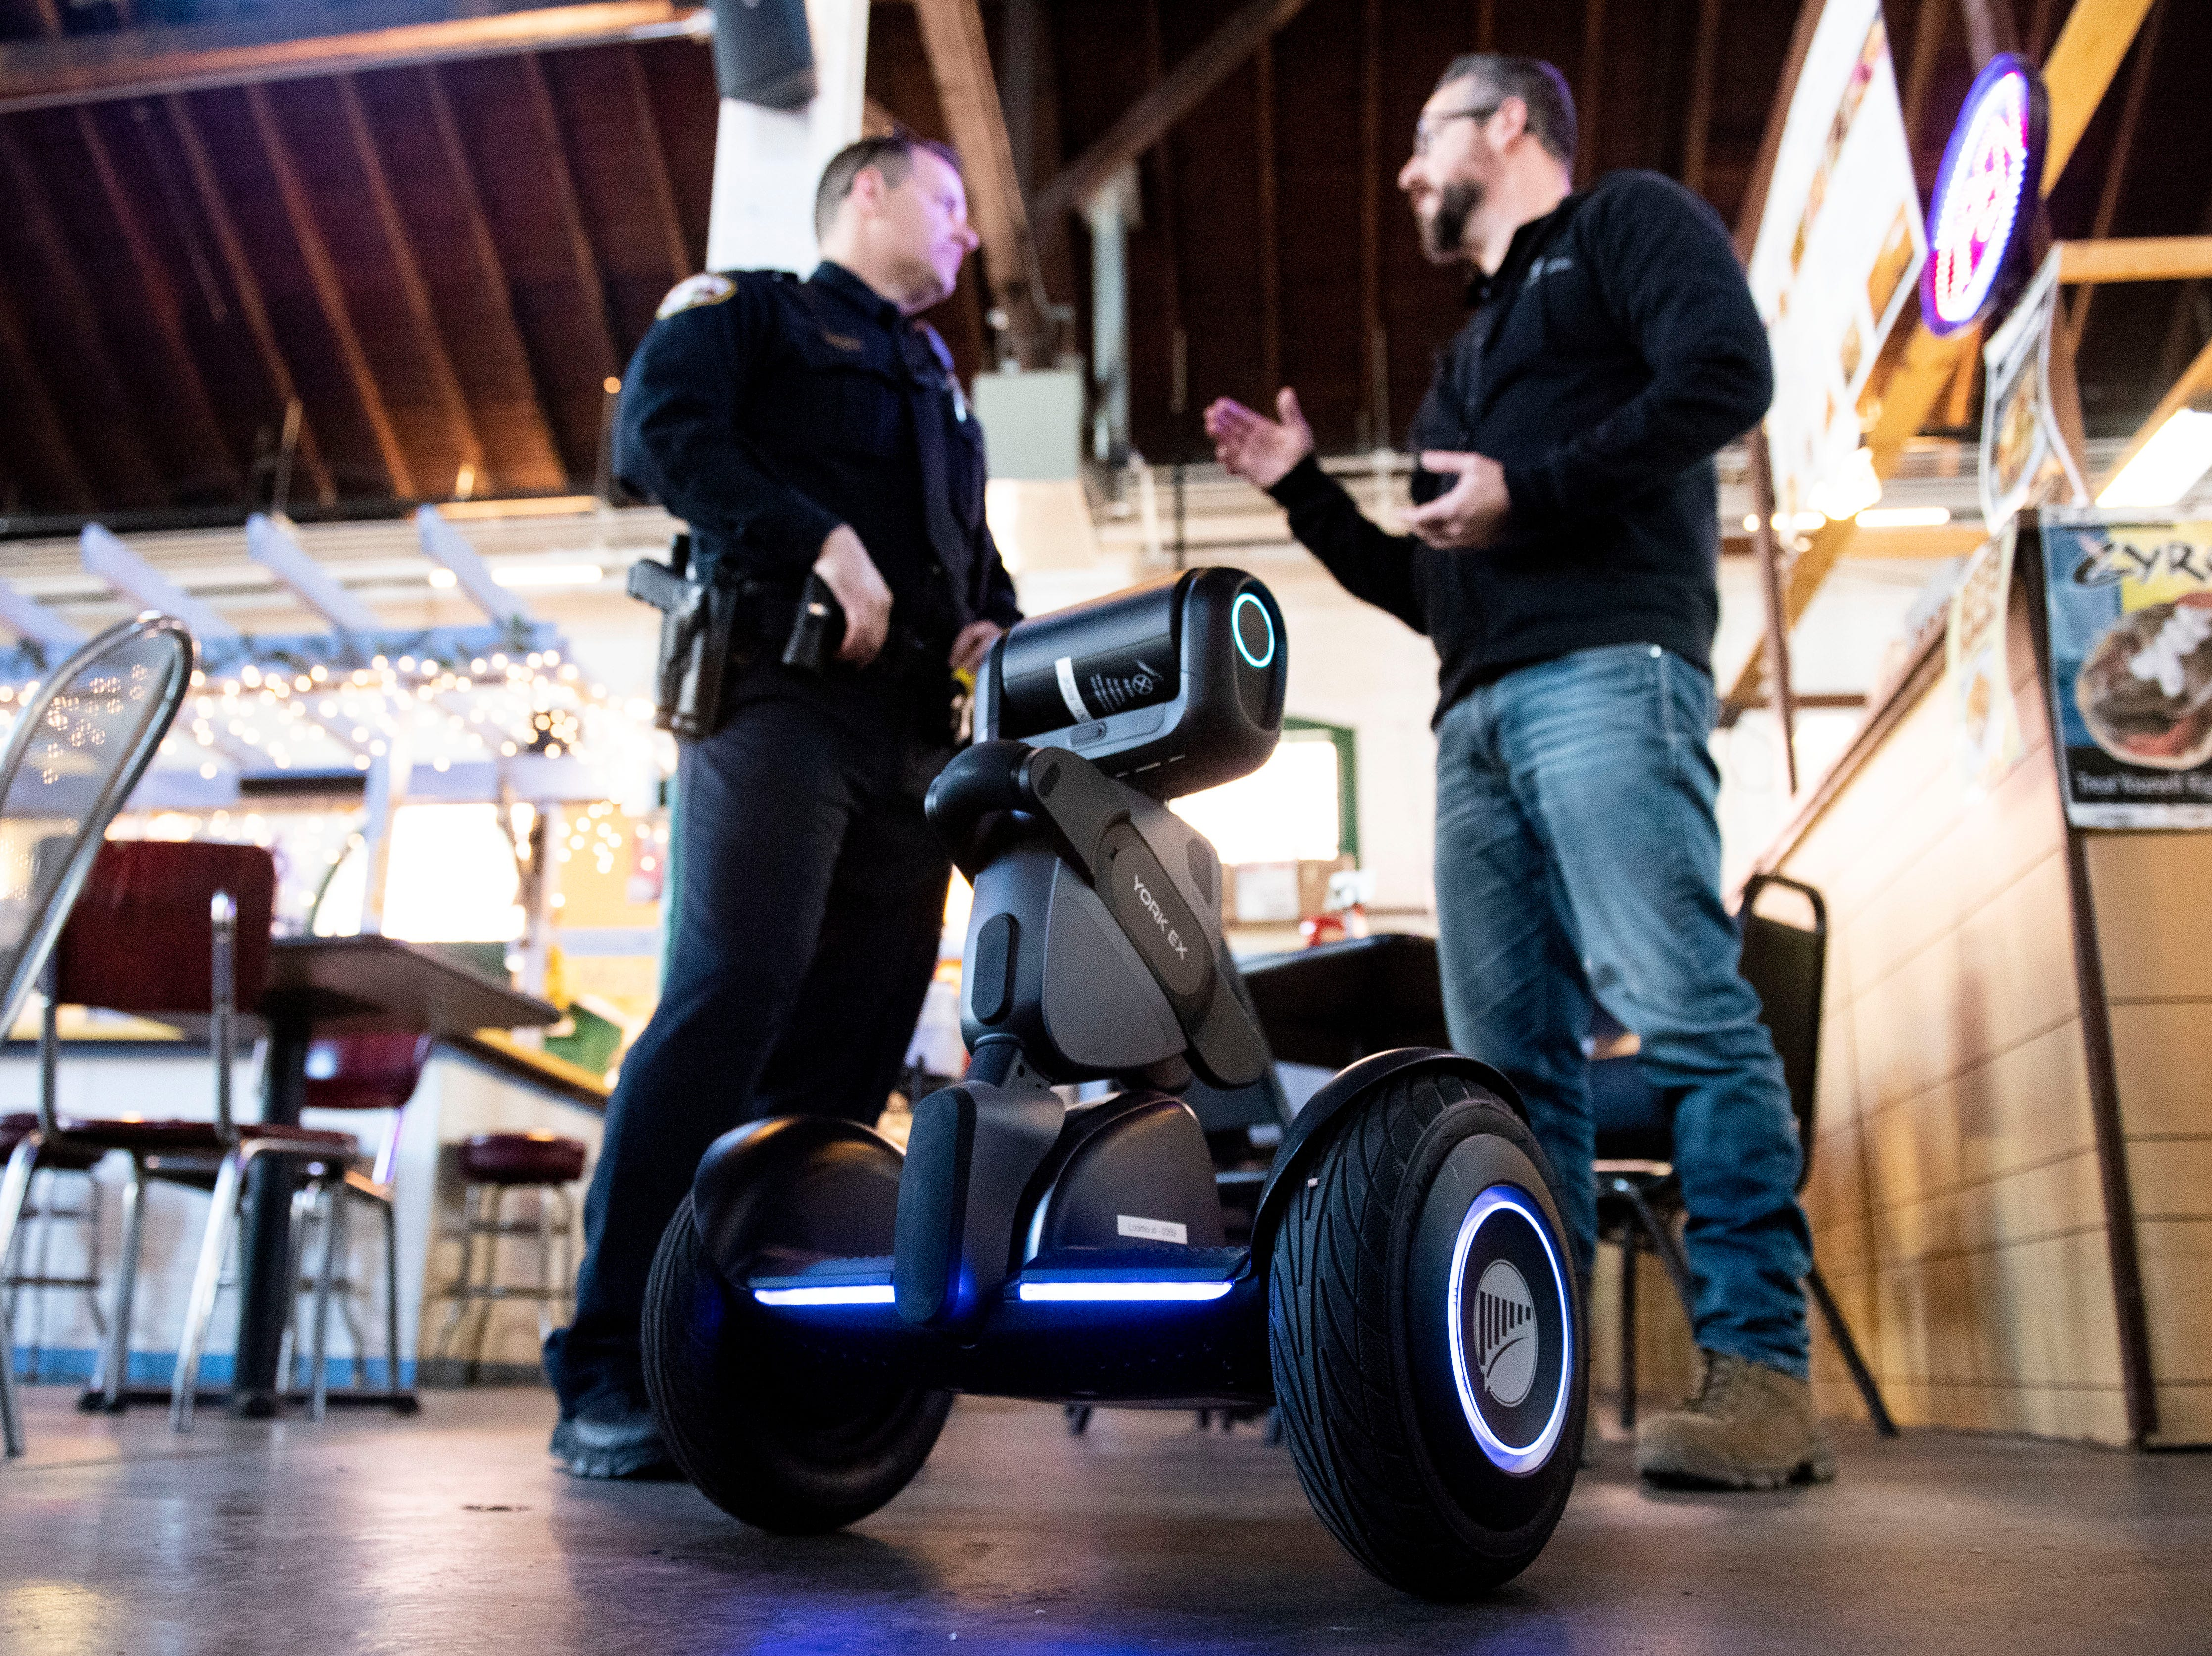 The 'Loomo' robot stands at attention in front of York City police officer Derek Hartman, left, and York Exponential CEO John McElligott in Central Market, Thursday, Nov. 8, 2018. McElligott believes the robot can be a valuable asset to the police department in the future.